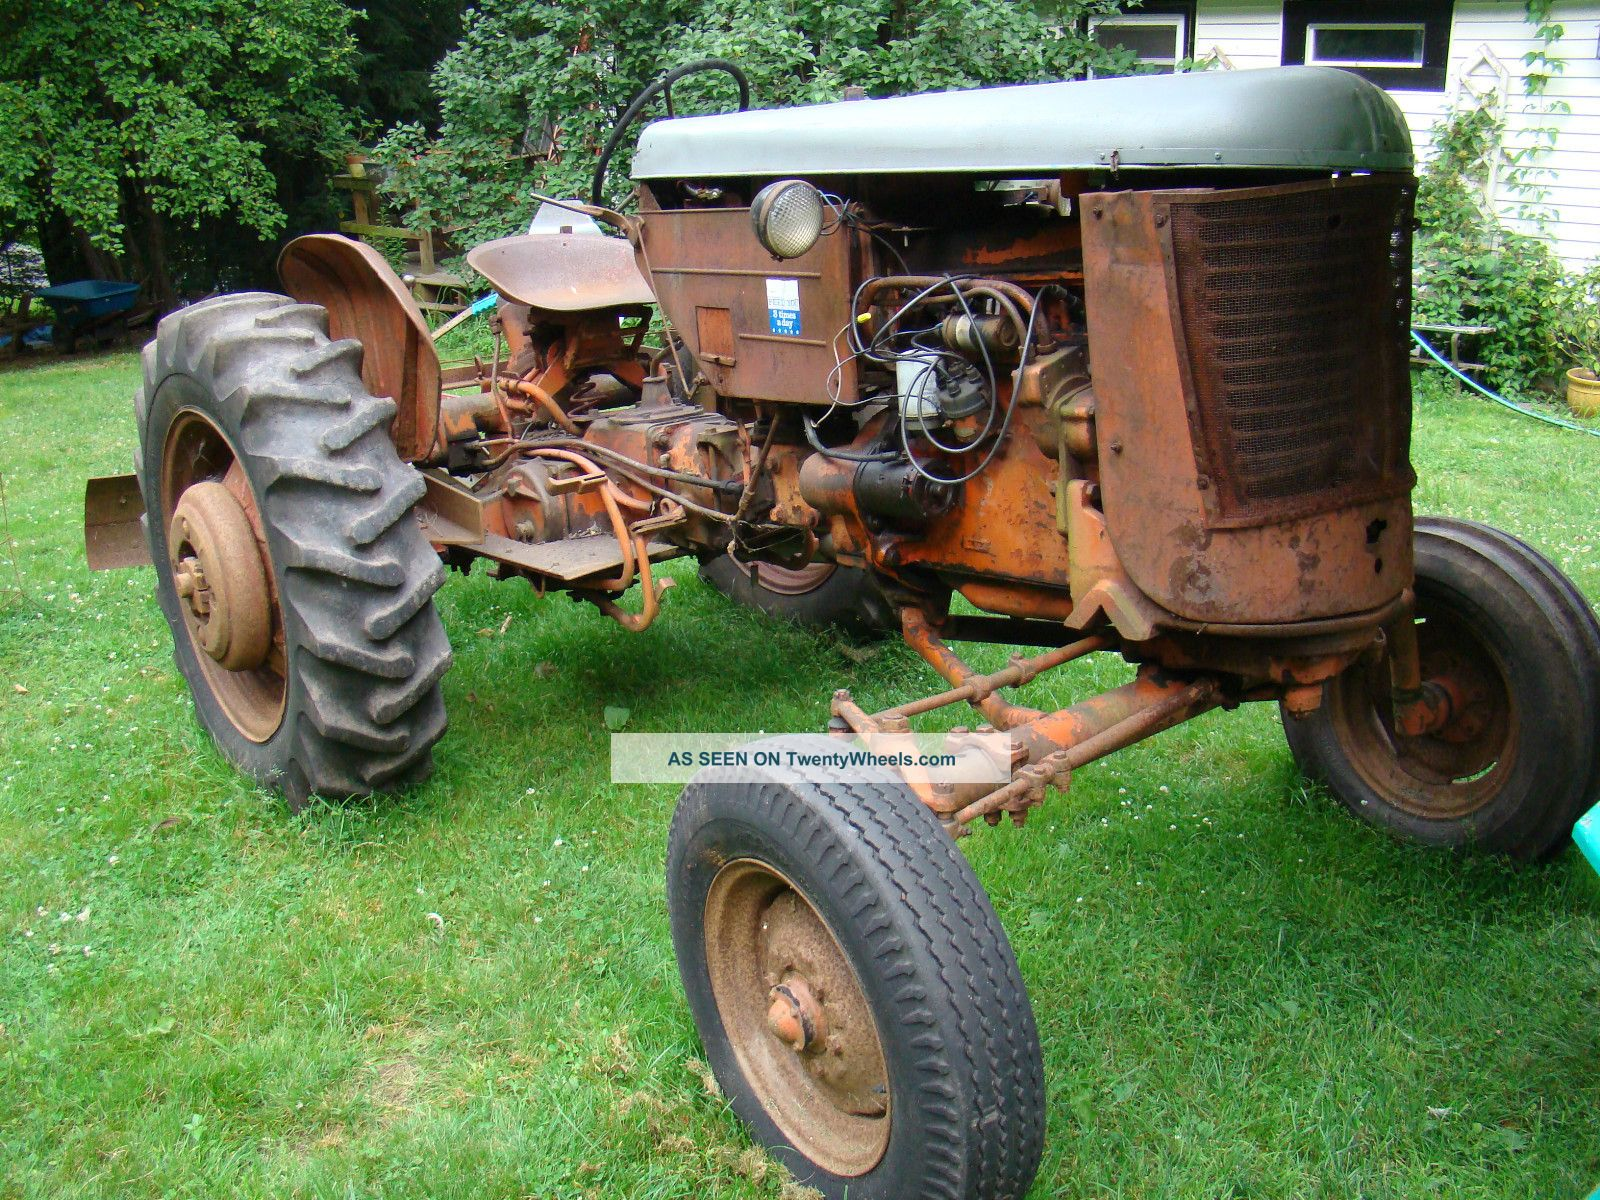 Case Vac Tractor Data : Case vac farm tractor runs wide front w tail plow